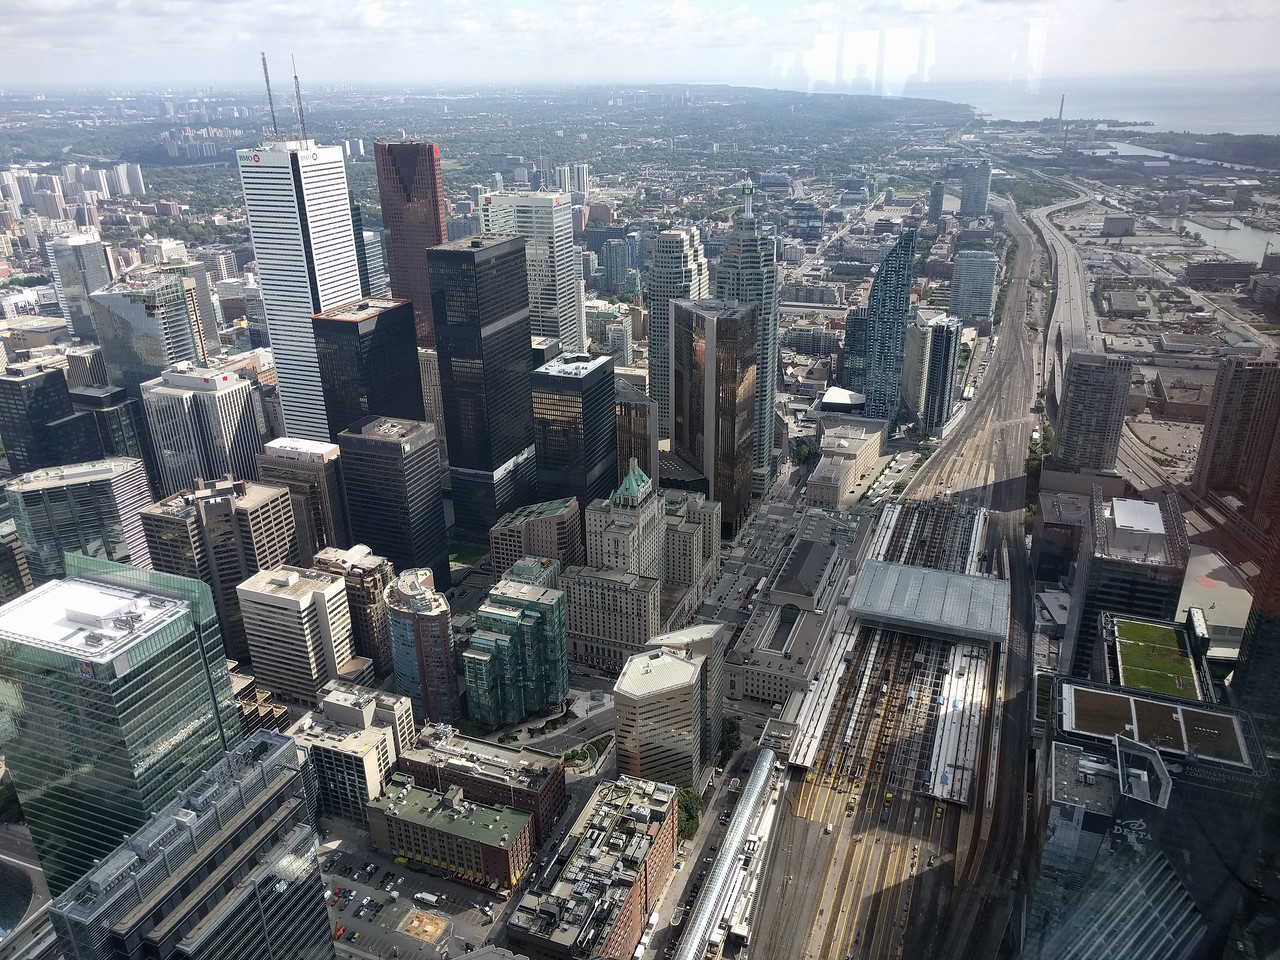 055 - Toronto - CN Tower - East View